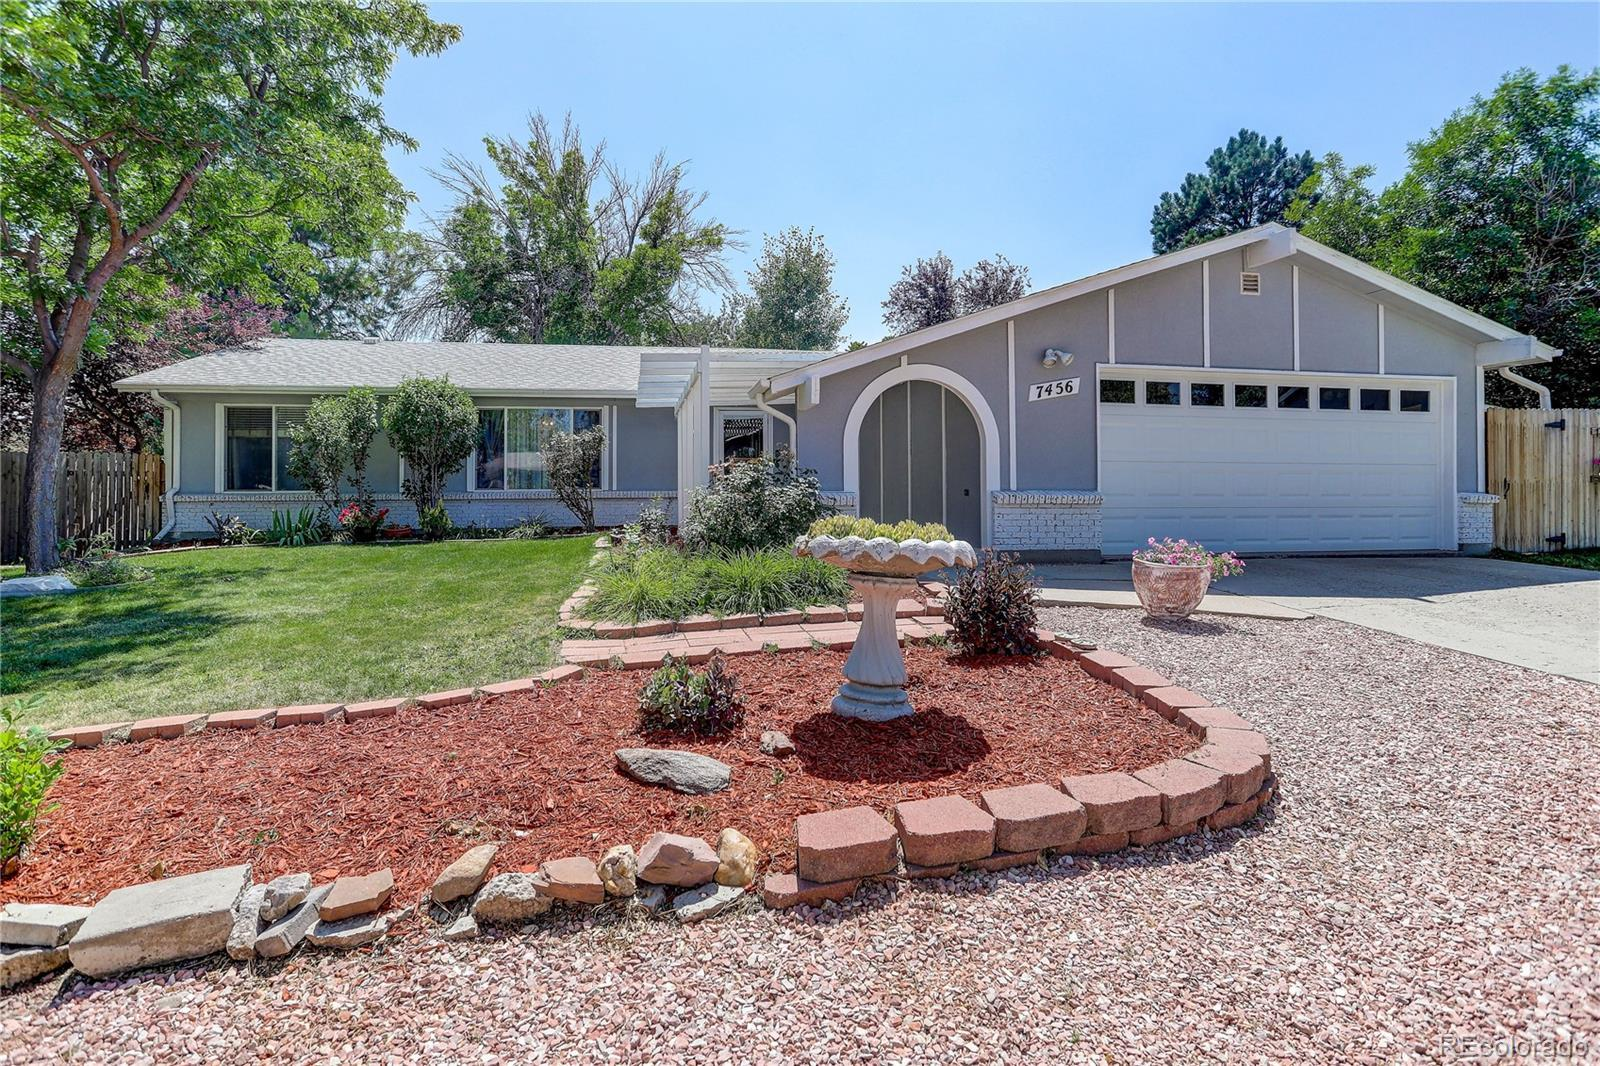 7456 W 81st Place, Arvada, CO 80003 - #: 6765413